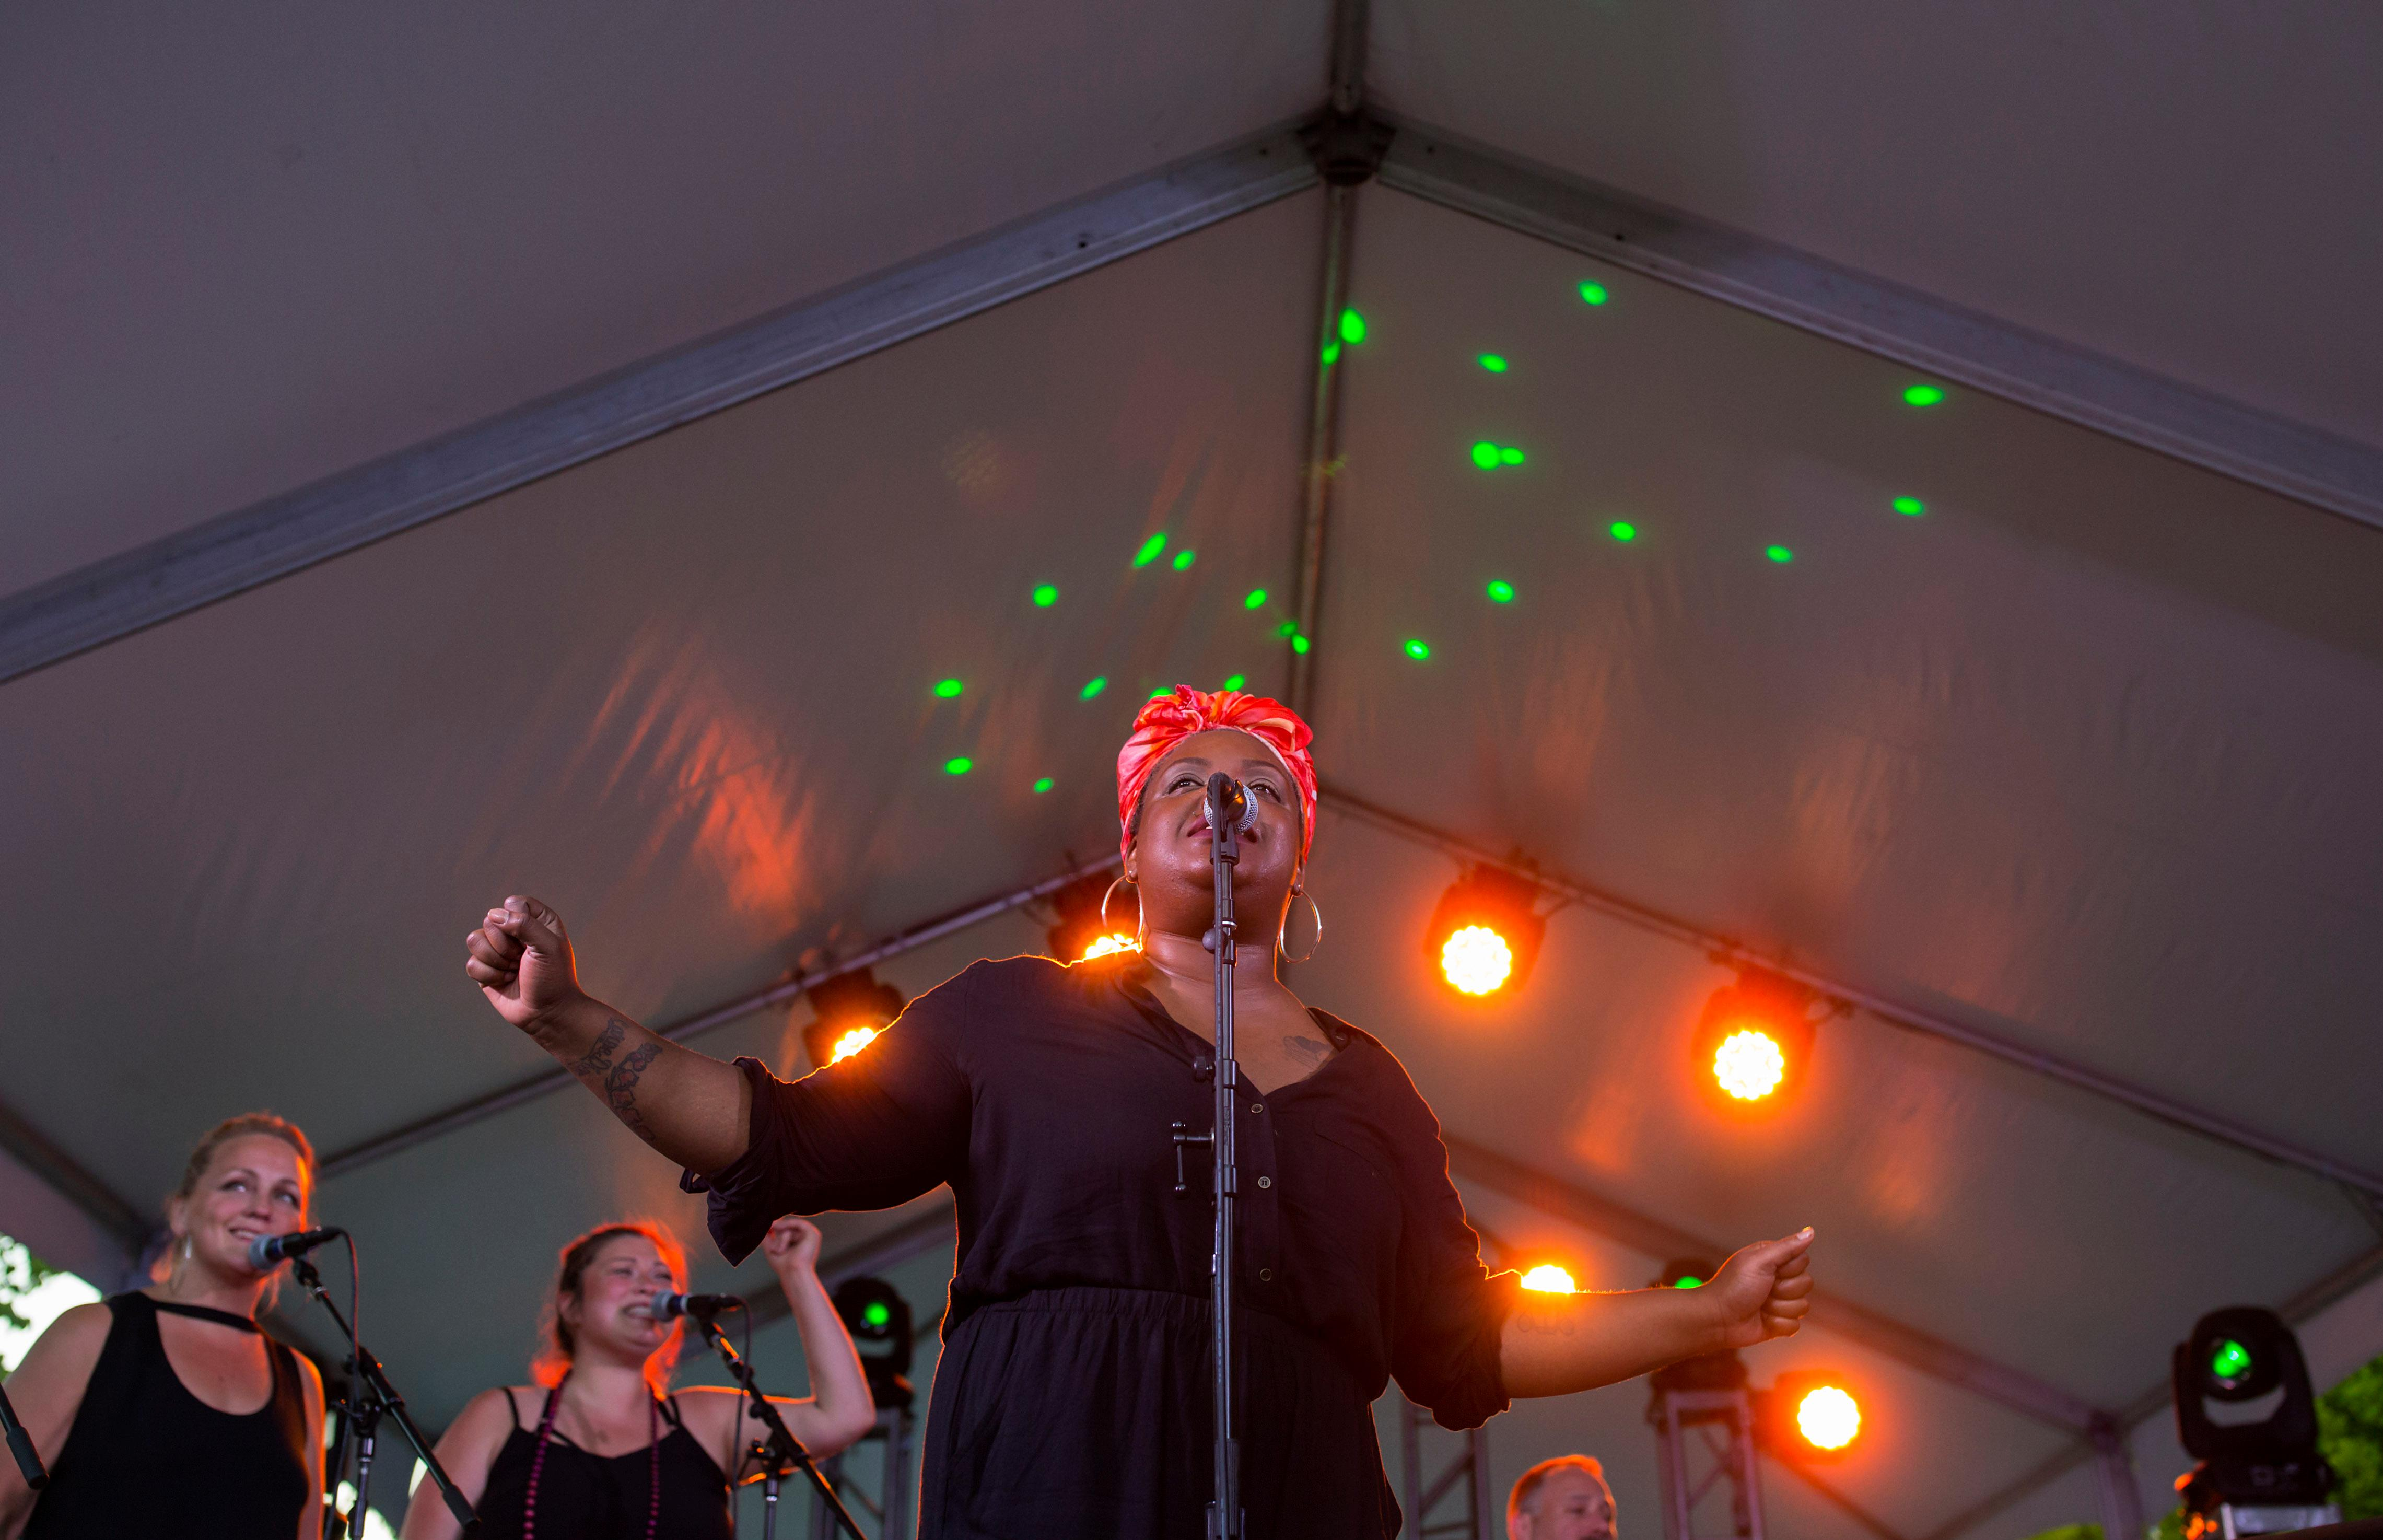 To celebrate the Olympic Sculpture Park's 10th anniversary, Party in the Park threw an awesome party with guest performers Sir-Mix-A-Lot, Grace Love, and DJing by KEXP's Michele Myers! (Sy Bean / Seattle Refined)